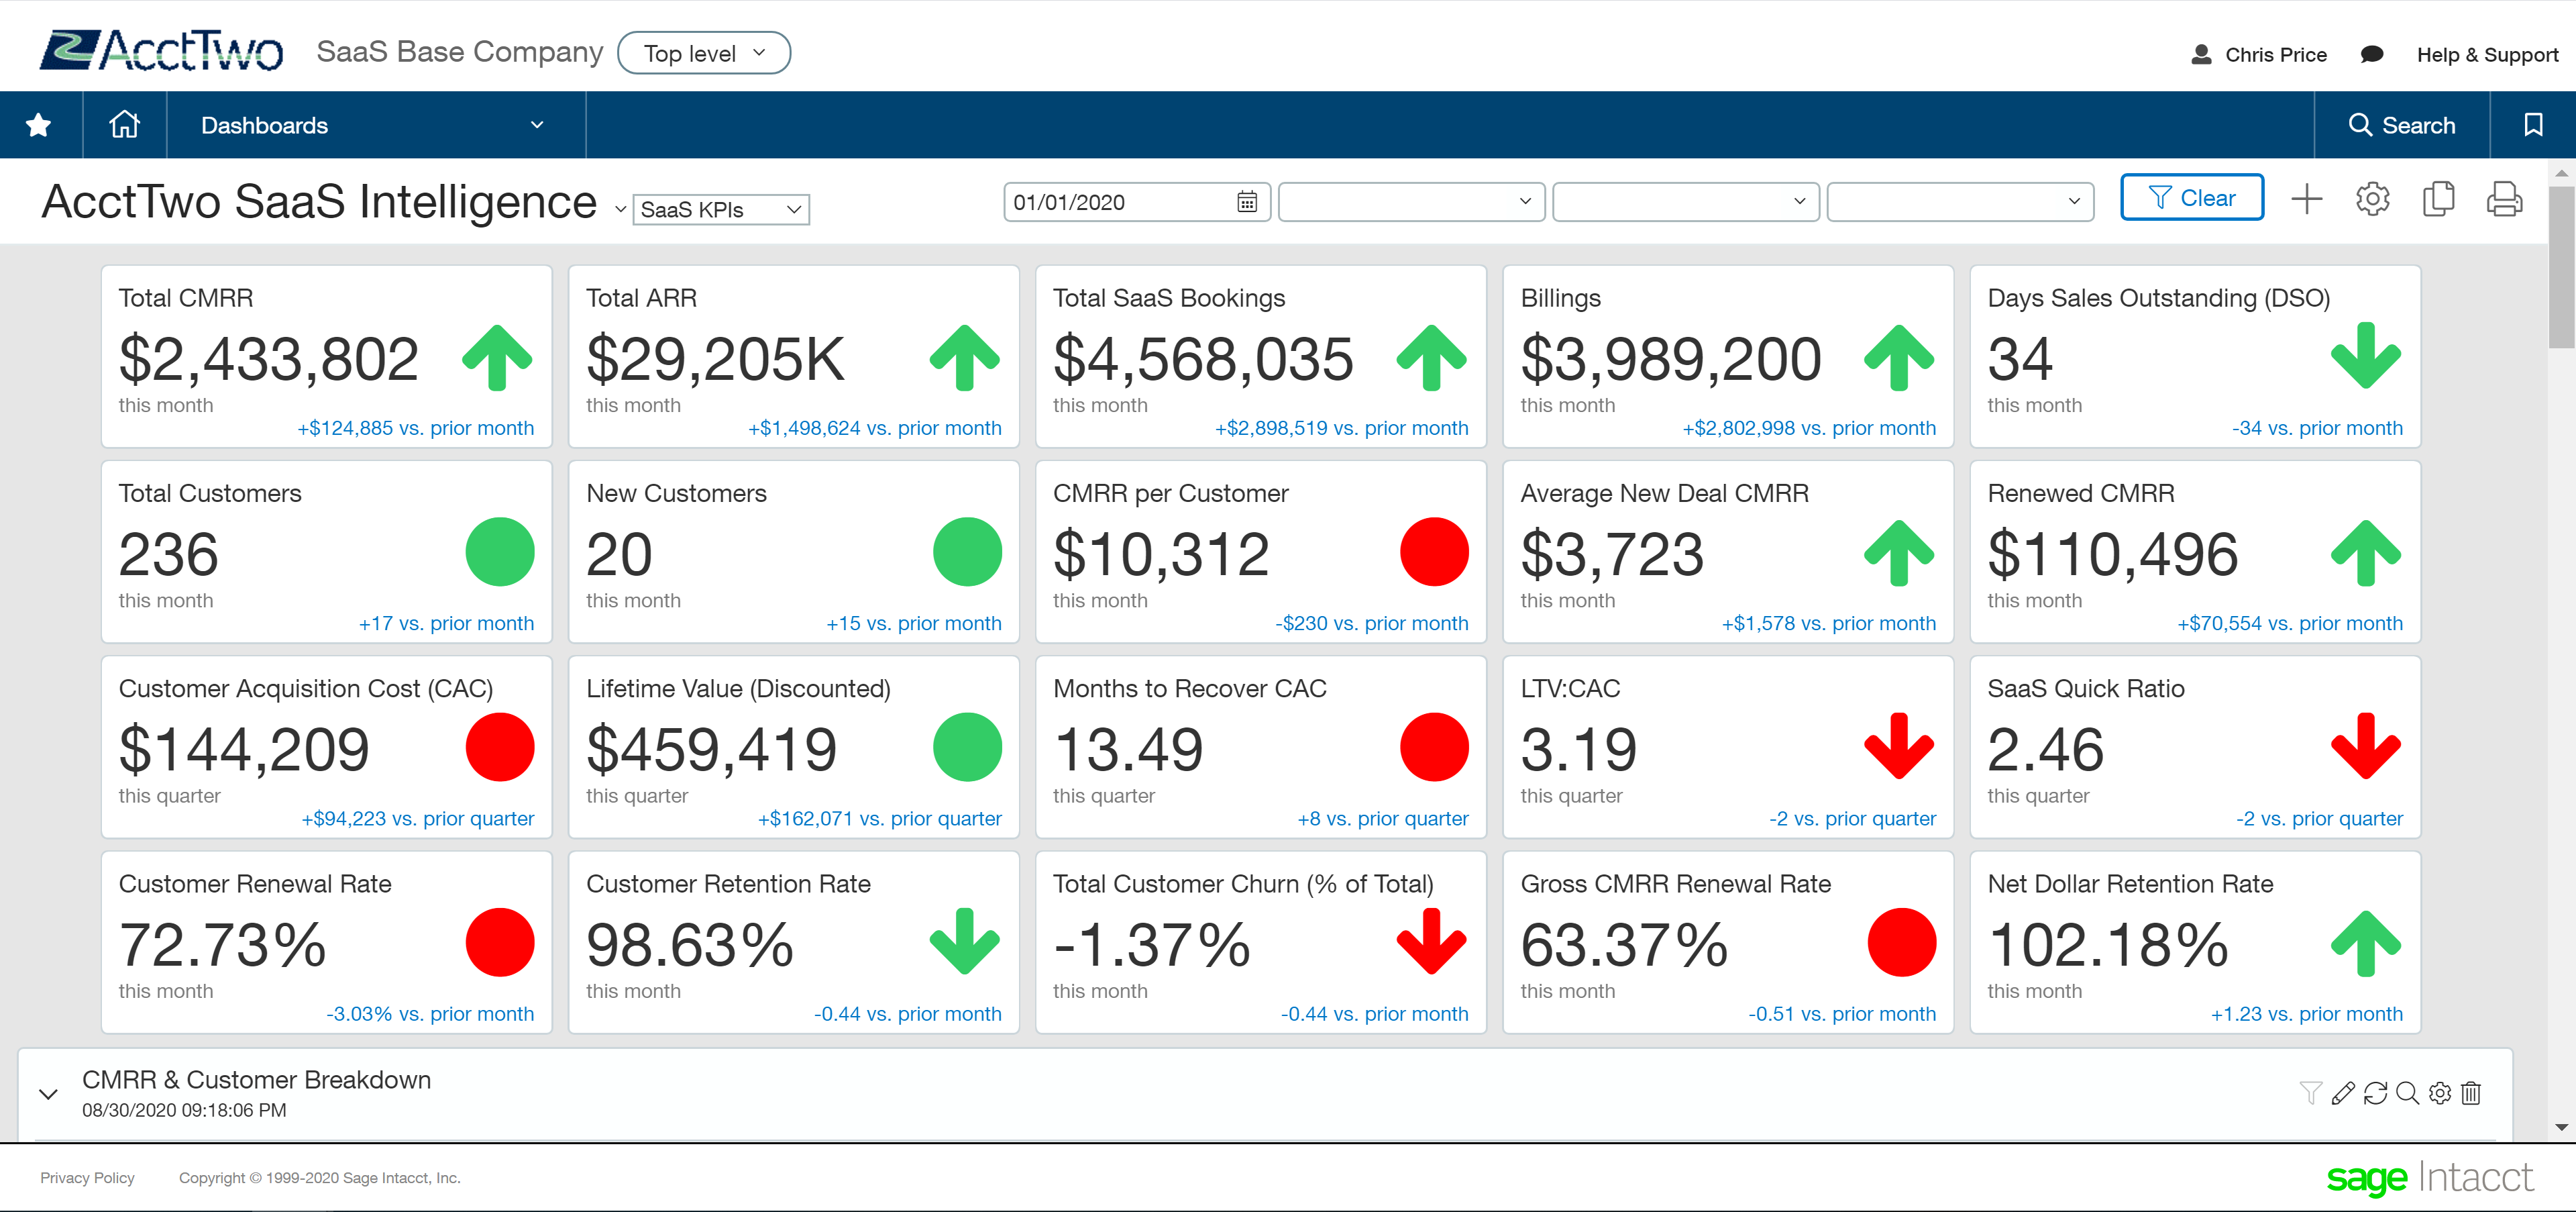 Replacing QuickBooks: 5 Essential Features Your Startup Software Needs